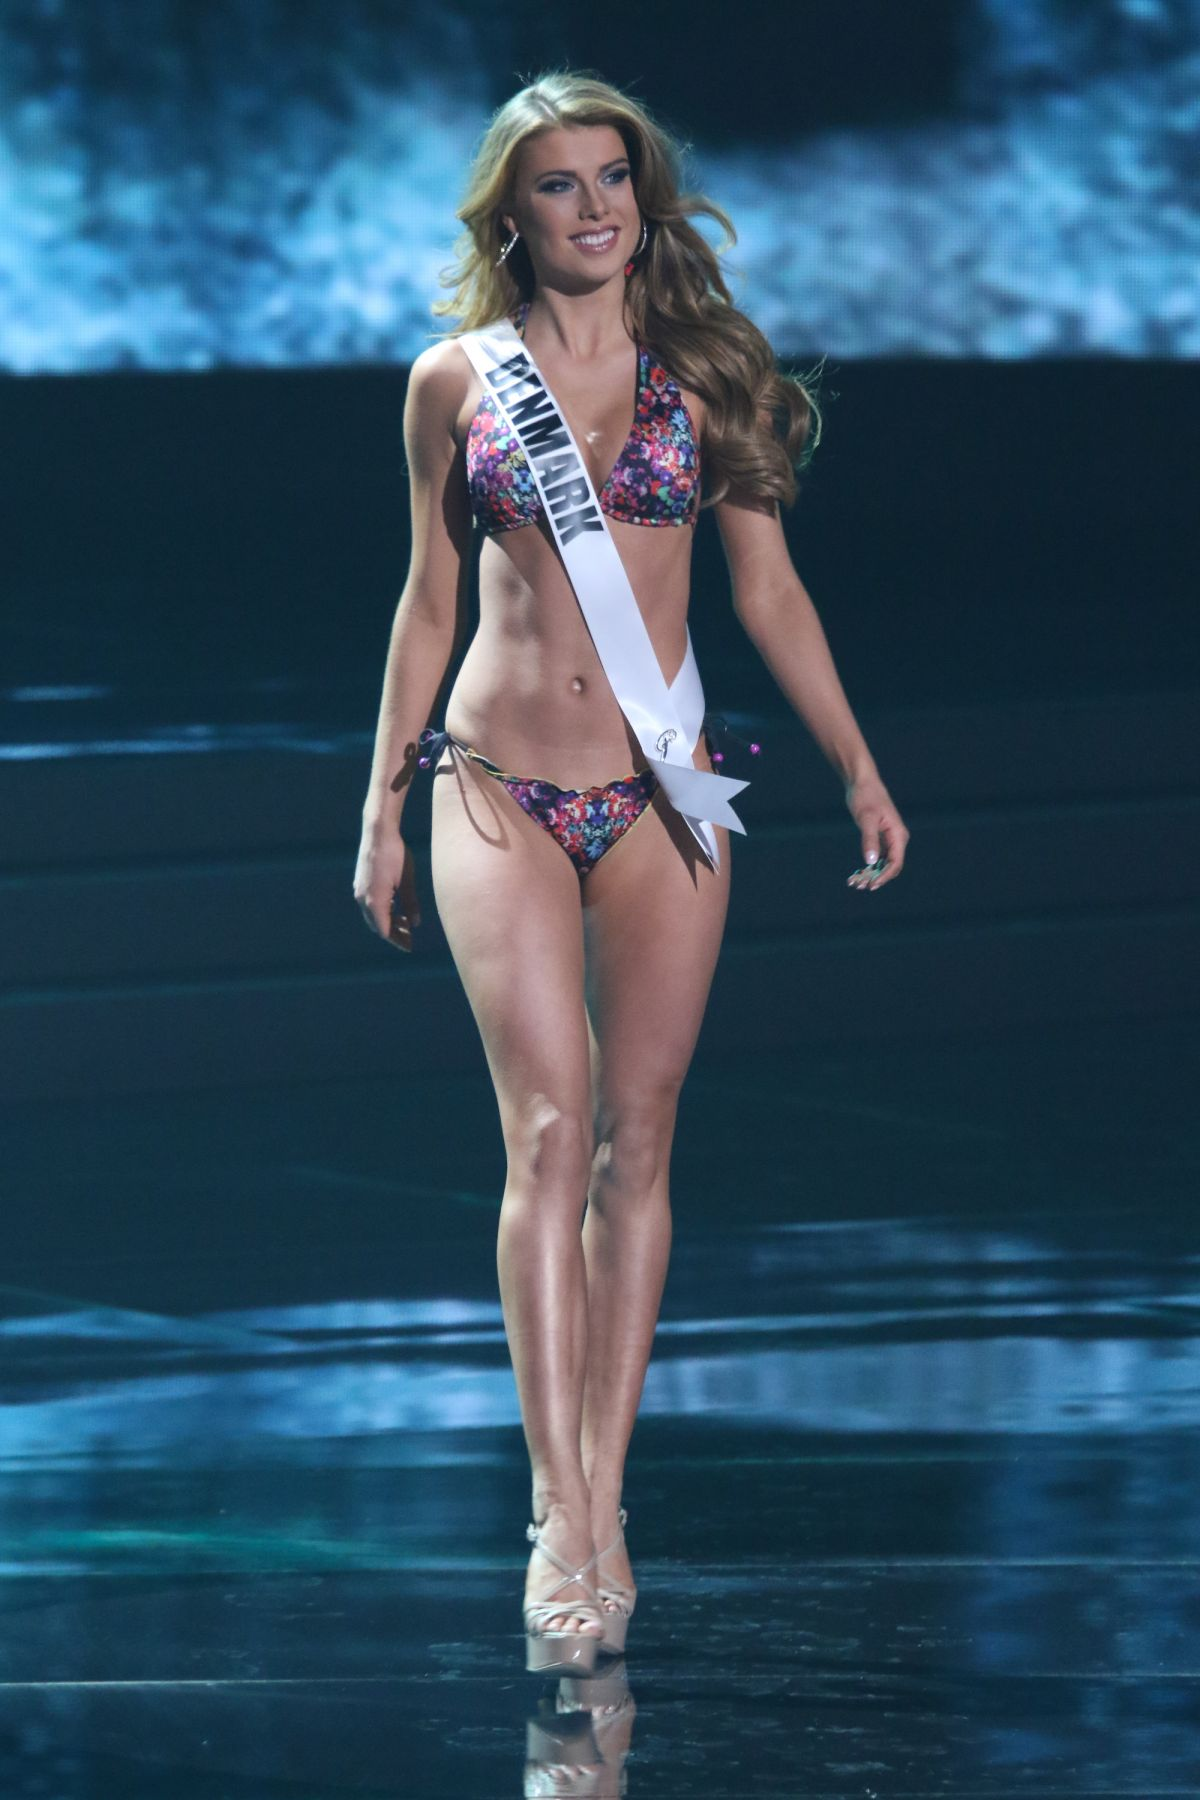 CECILIA WELLEMBERG - Miss Universe 2015 Preliminary Round 12/16/2015